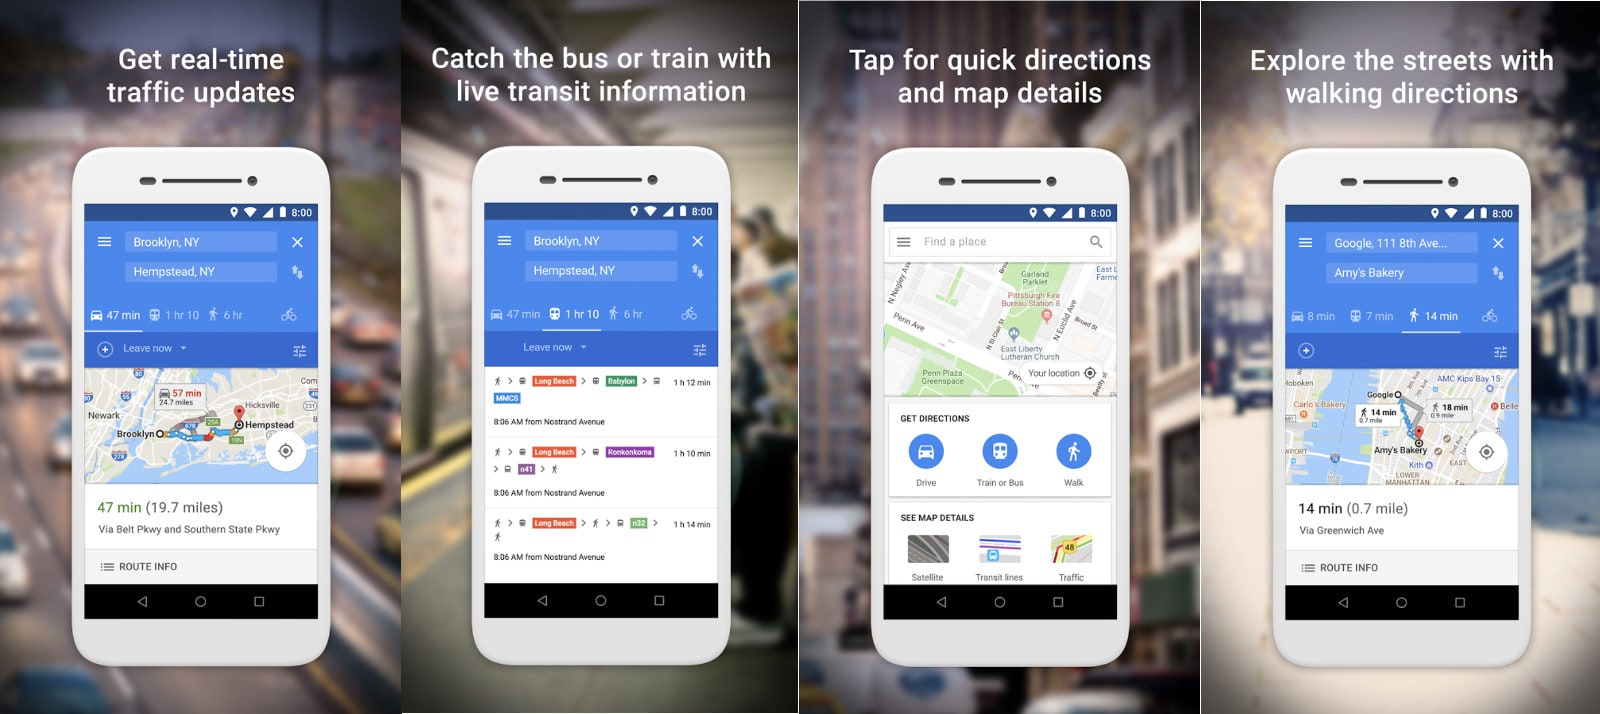 Google opens Maps Go beta to US-based testers on yahoo! maps, google goggles, go to ebay, route planning software, google docs, google chrome, google latitude, go to settings, go to home, go to facebook, go to email, bing maps, google street view, google voice, google sky, satellite map images with missing or unclear data, go to netflix, google translate, go to mail, google map maker, google search, web mapping, go to amazon, google mars, google moon, go to internet, google earth,